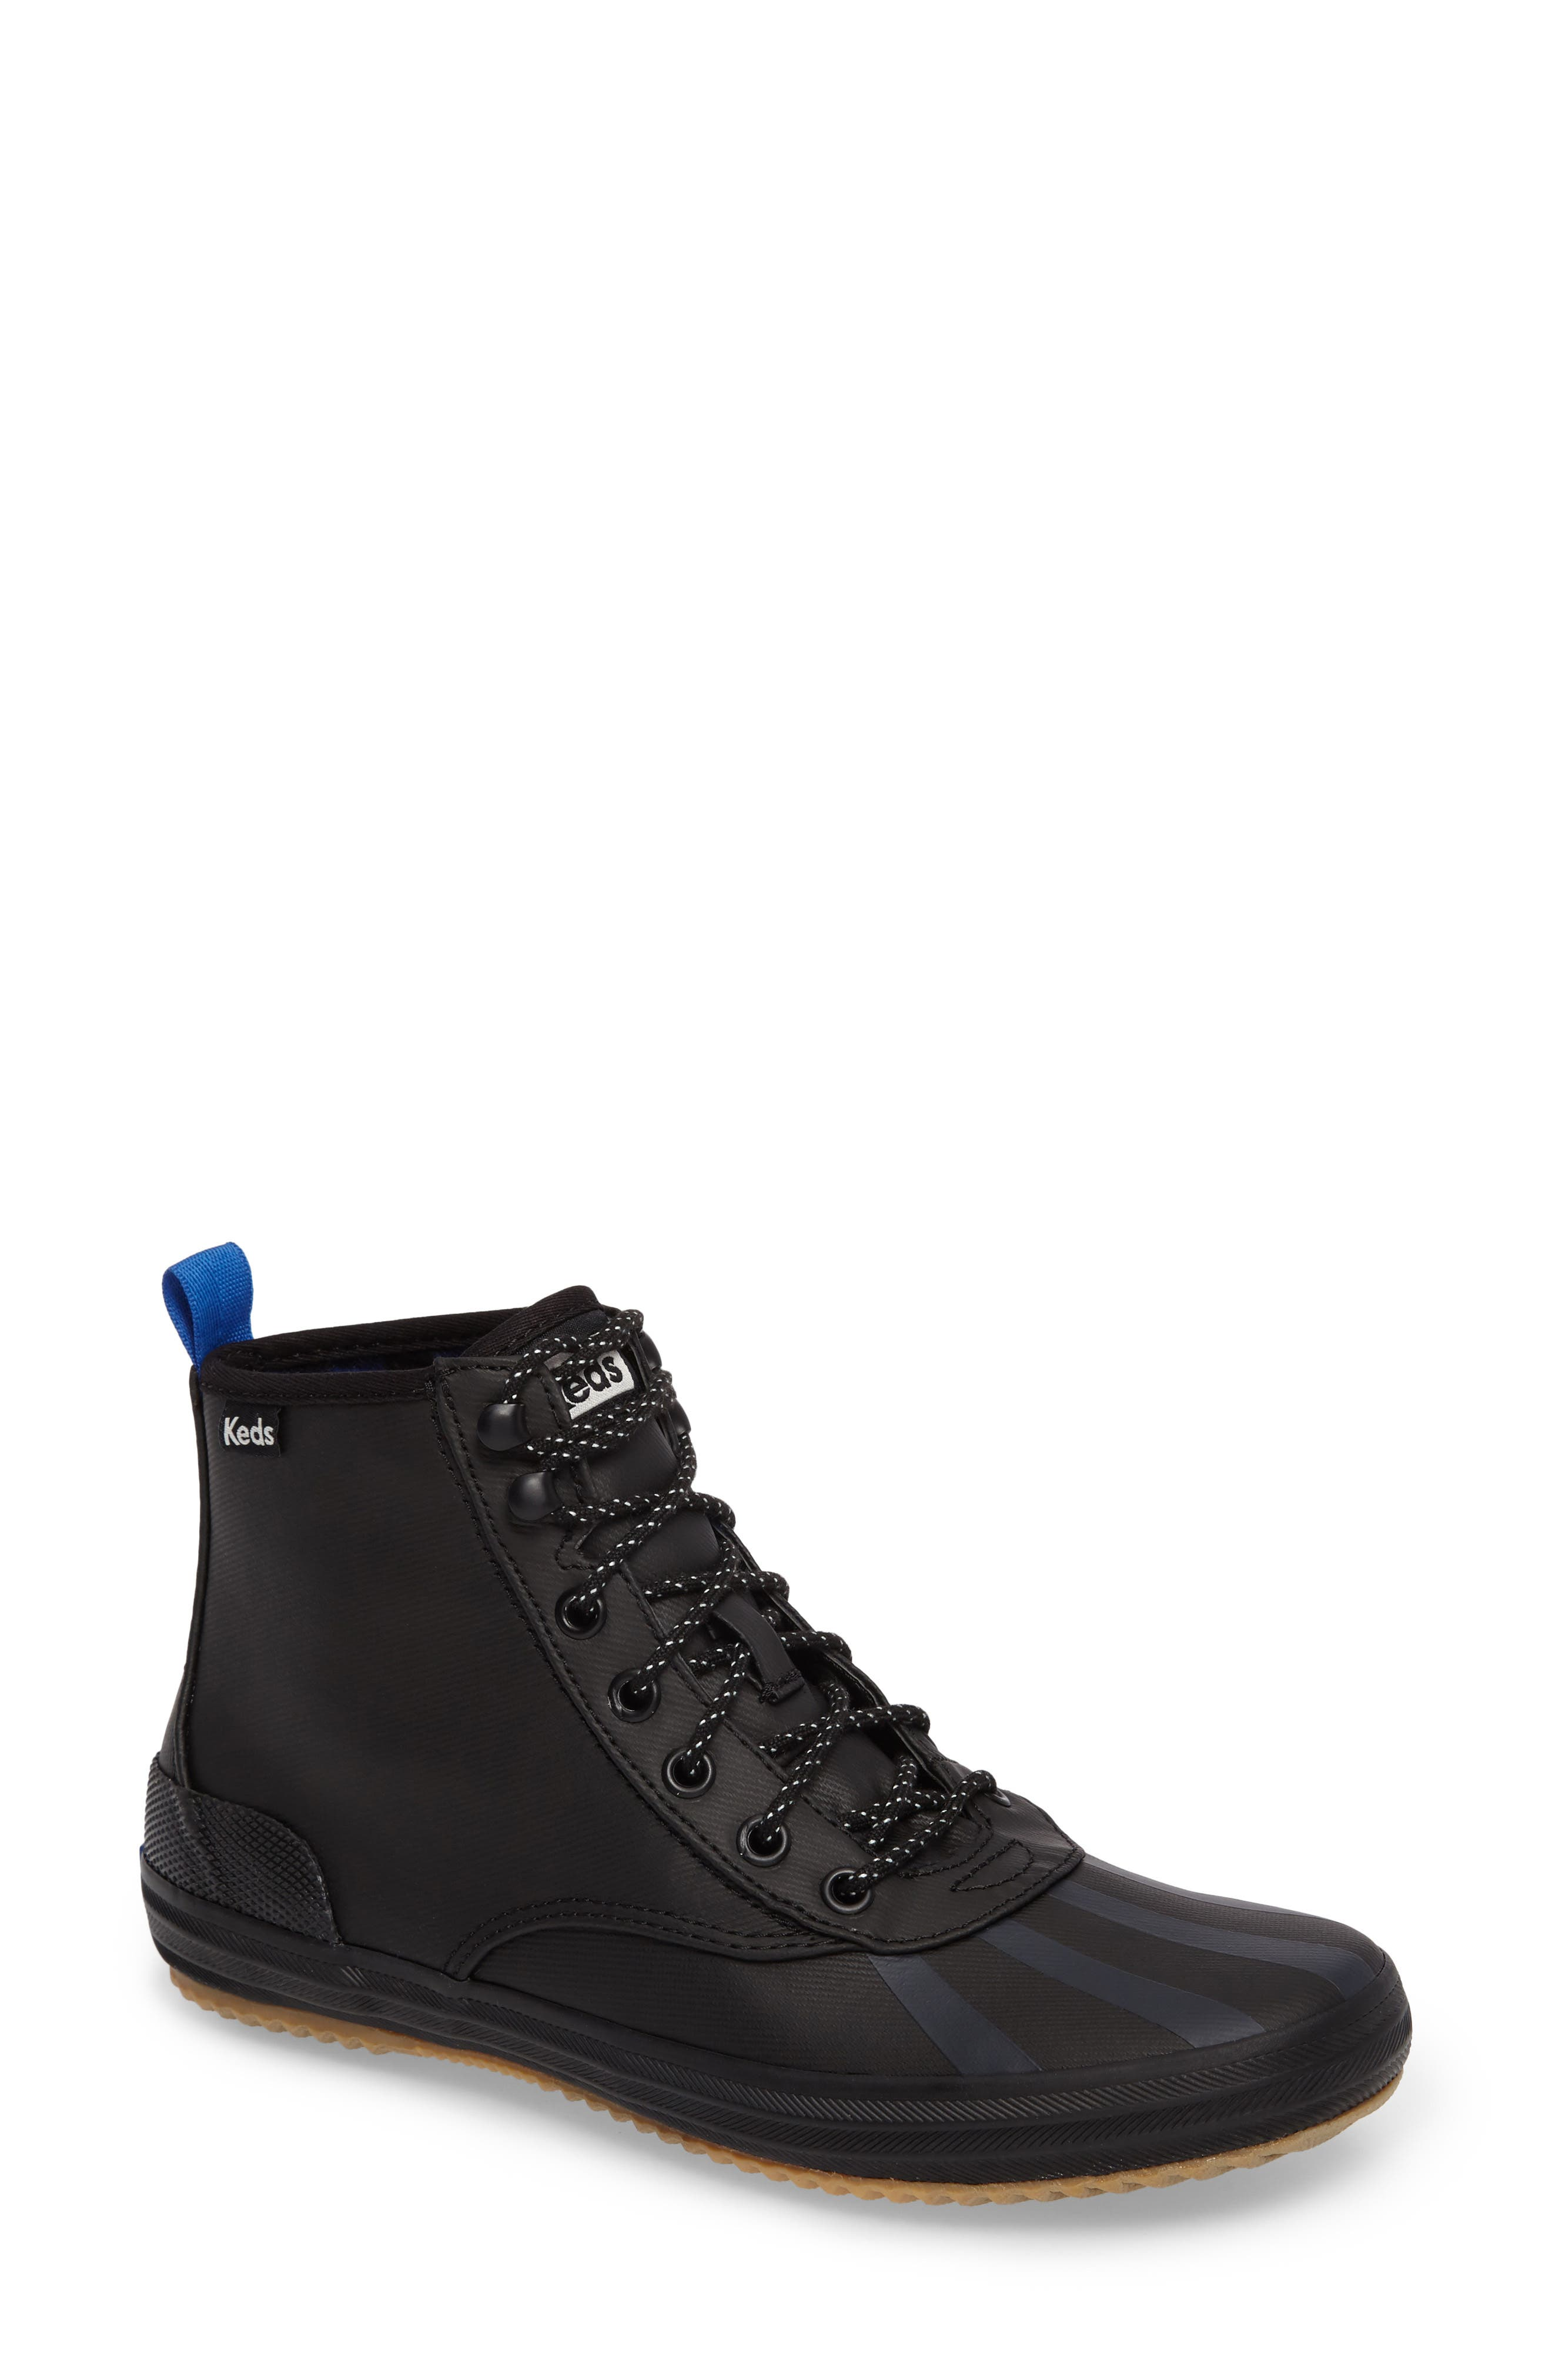 Main Image - Keds® Scout Water Repellent Sneaker Boot (Women)